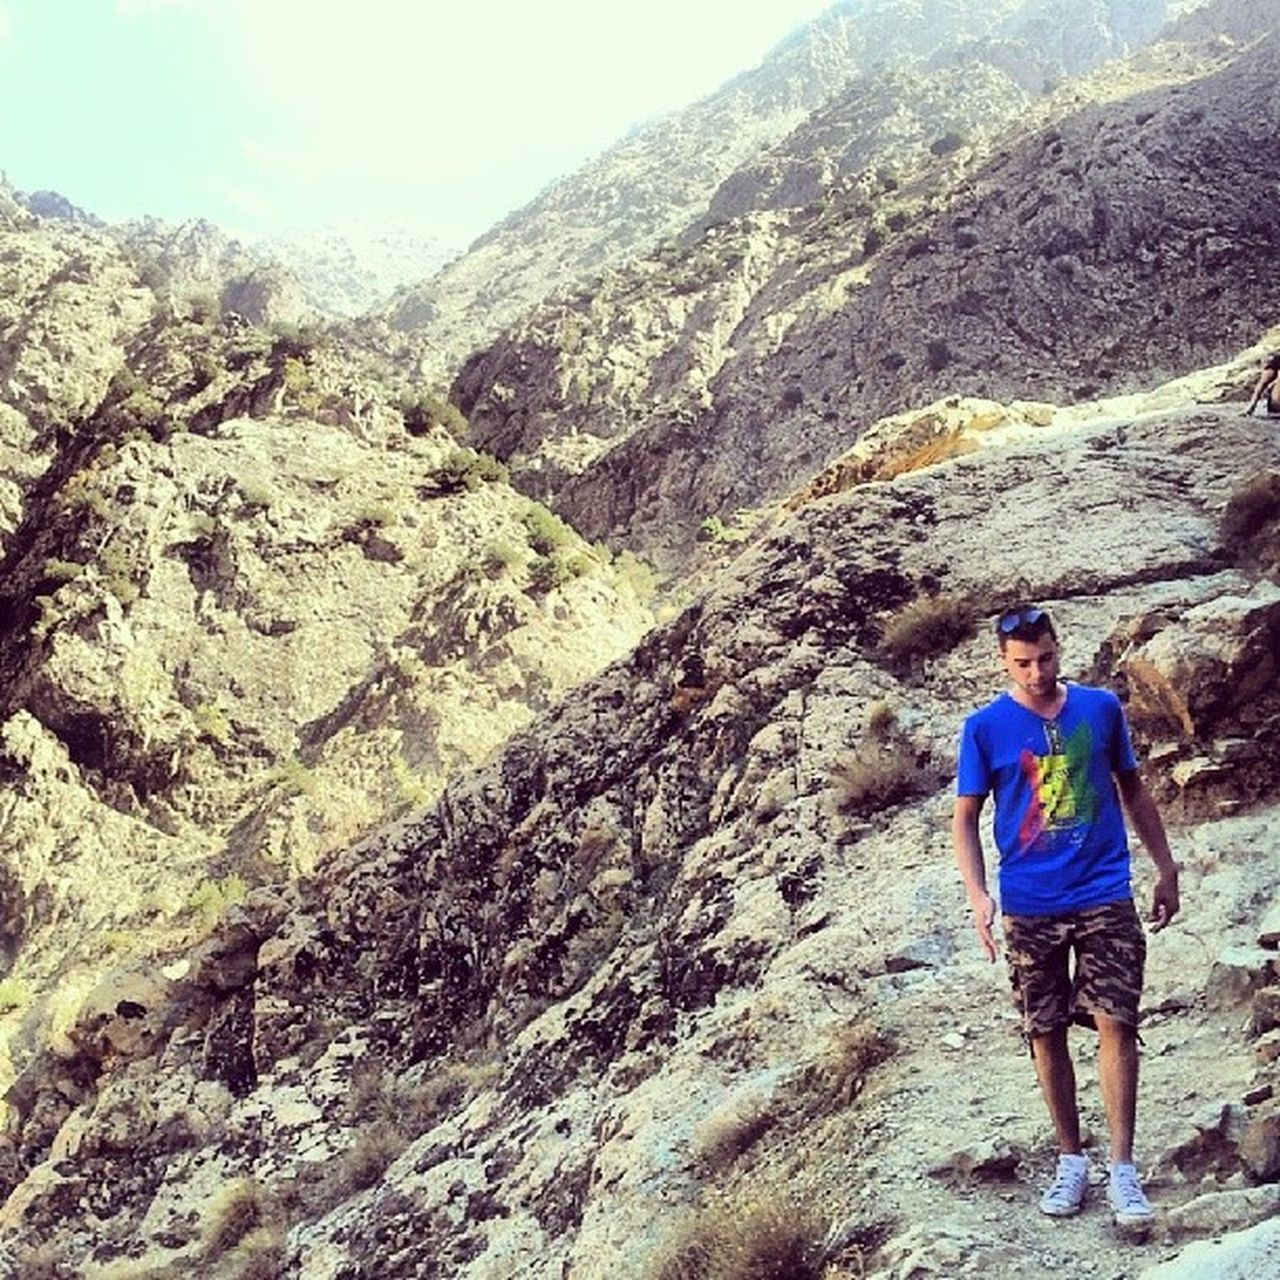 real people, mountain, one person, backpack, adventure, hiking, men, rear view, nature, leisure activity, rock - object, lifestyles, full length, standing, casual clothing, day, outdoors, young men, young adult, scenics, one man only, landscape, beauty in nature, climbing, sky, only men, adult, adults only, people